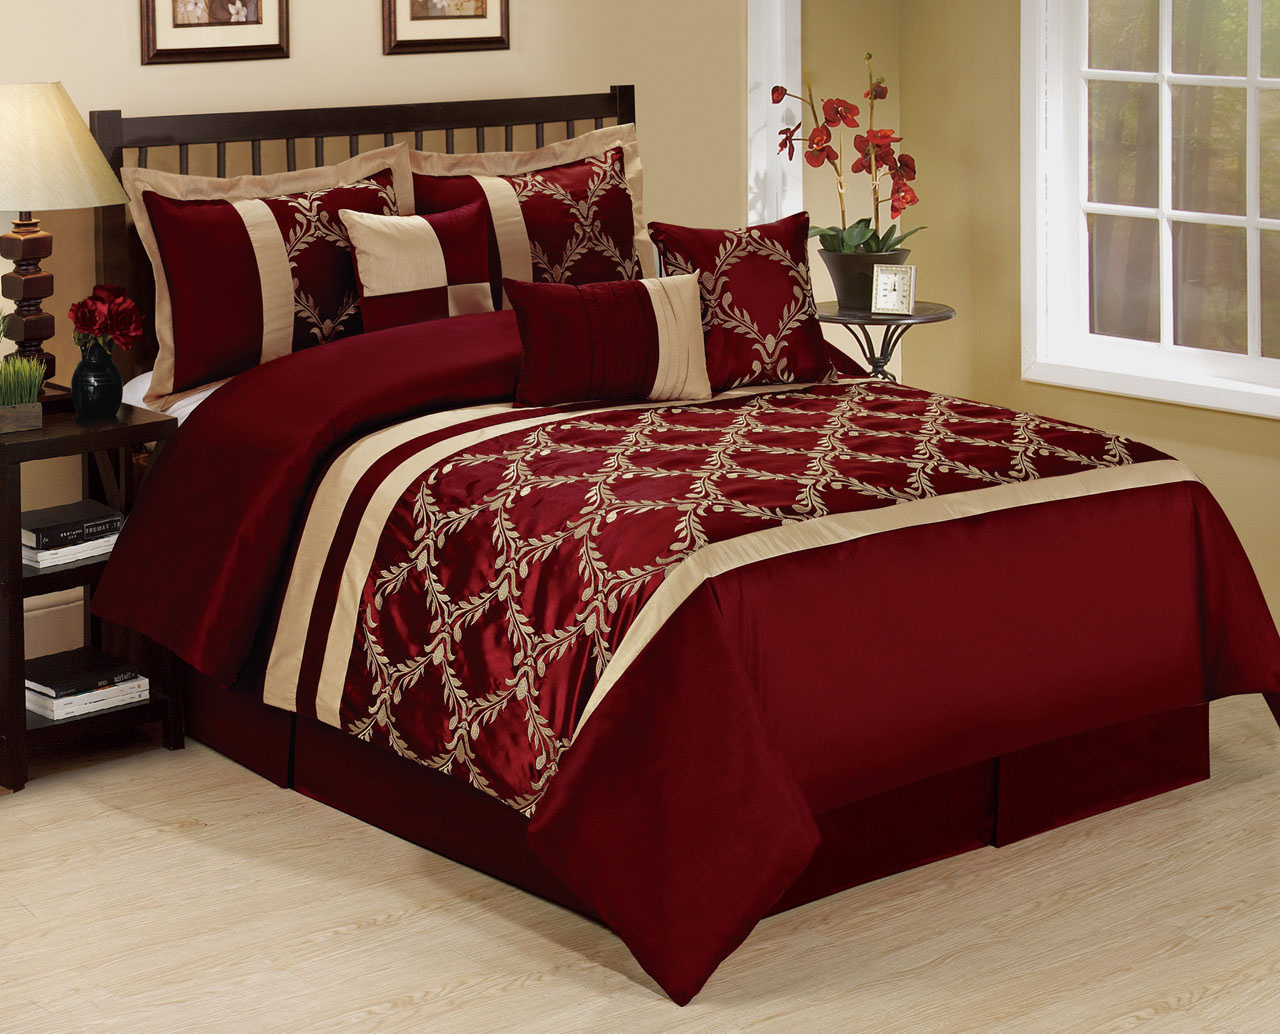 set sets twin modern com piece aruba orange with burnt popular coursecanary queen taupe comforter